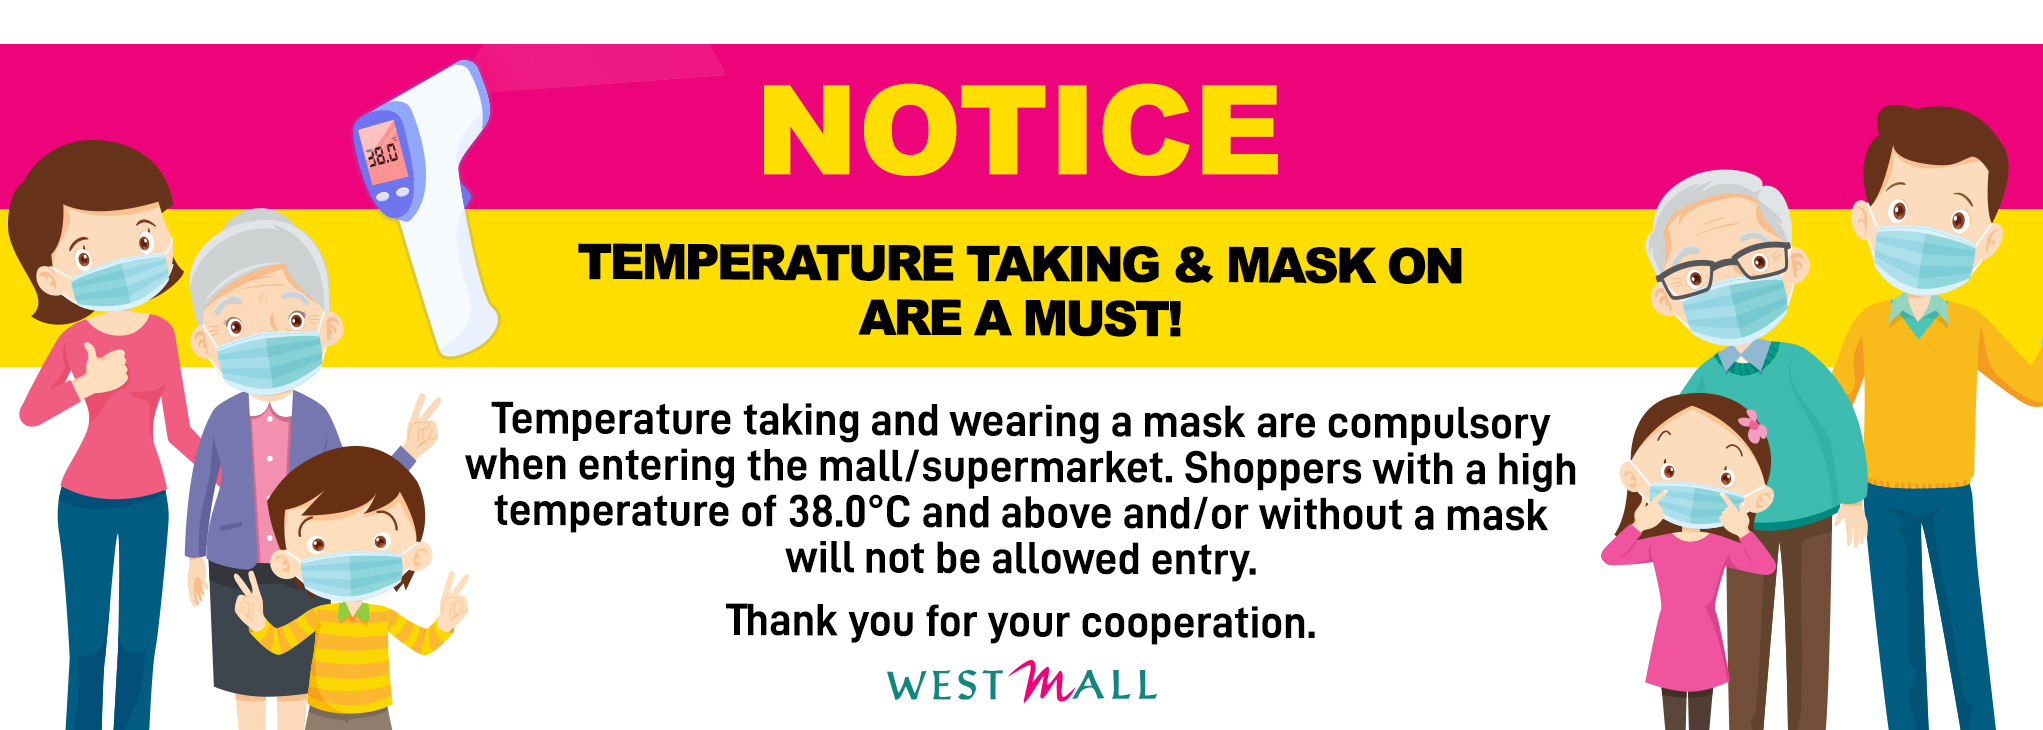 Mask notice_web banner